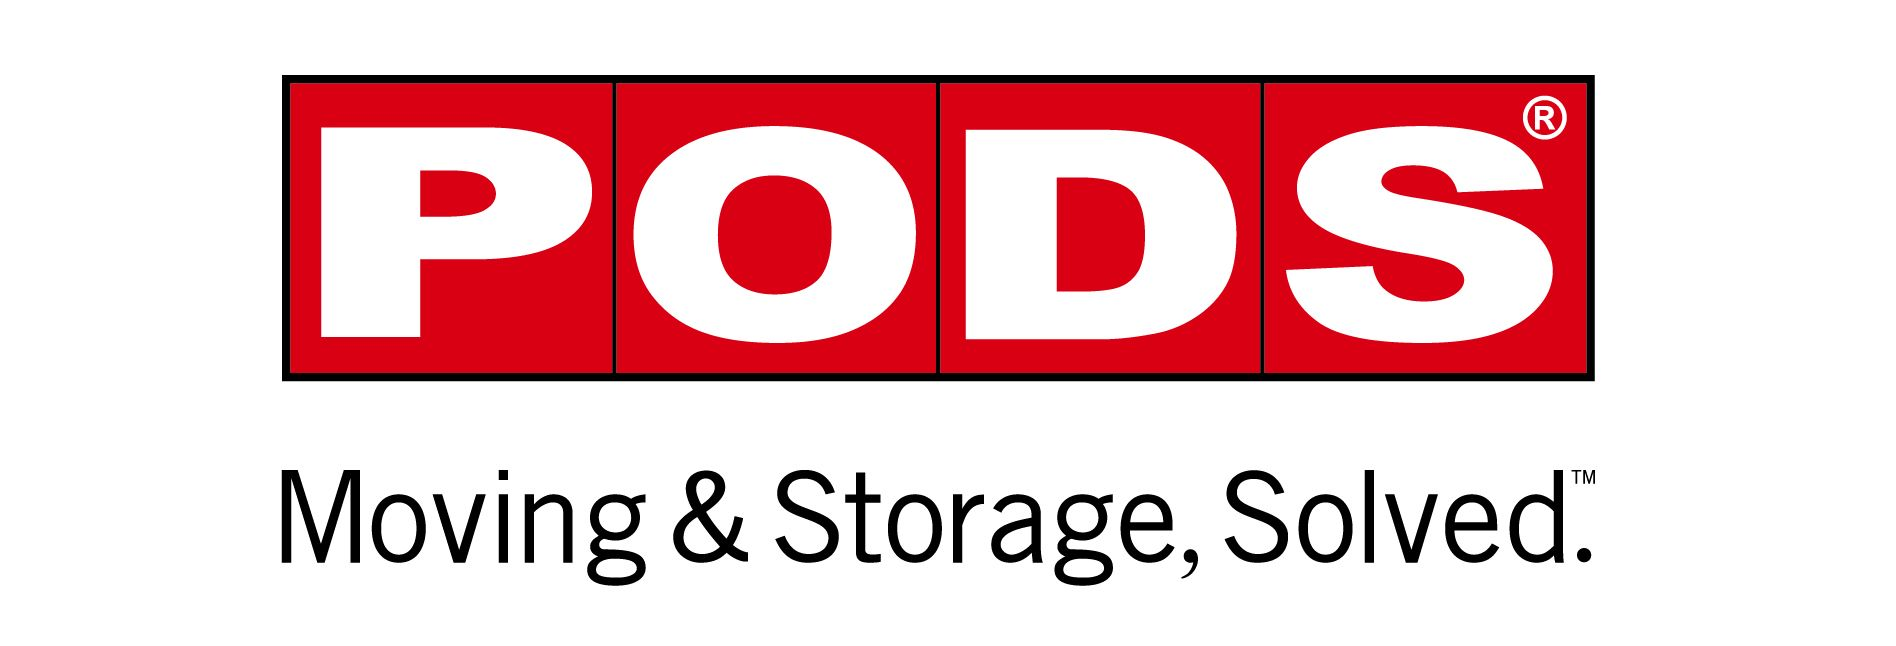 Pods Moving And Storage >> Moving And Storage Leader Pods Announces Deal To Be